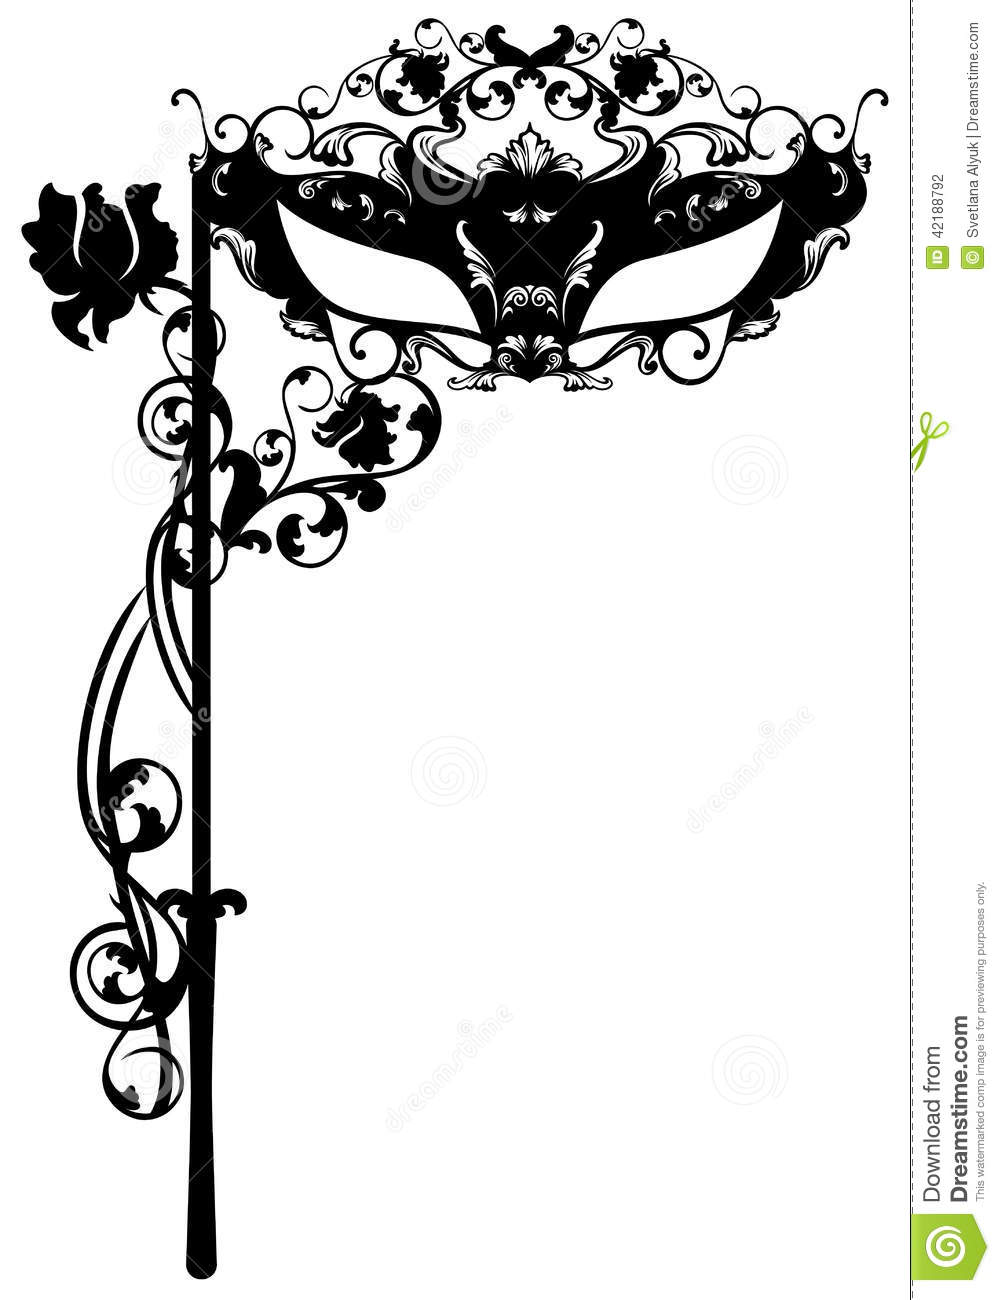 Masquerade Page Border Images - Reverse Search